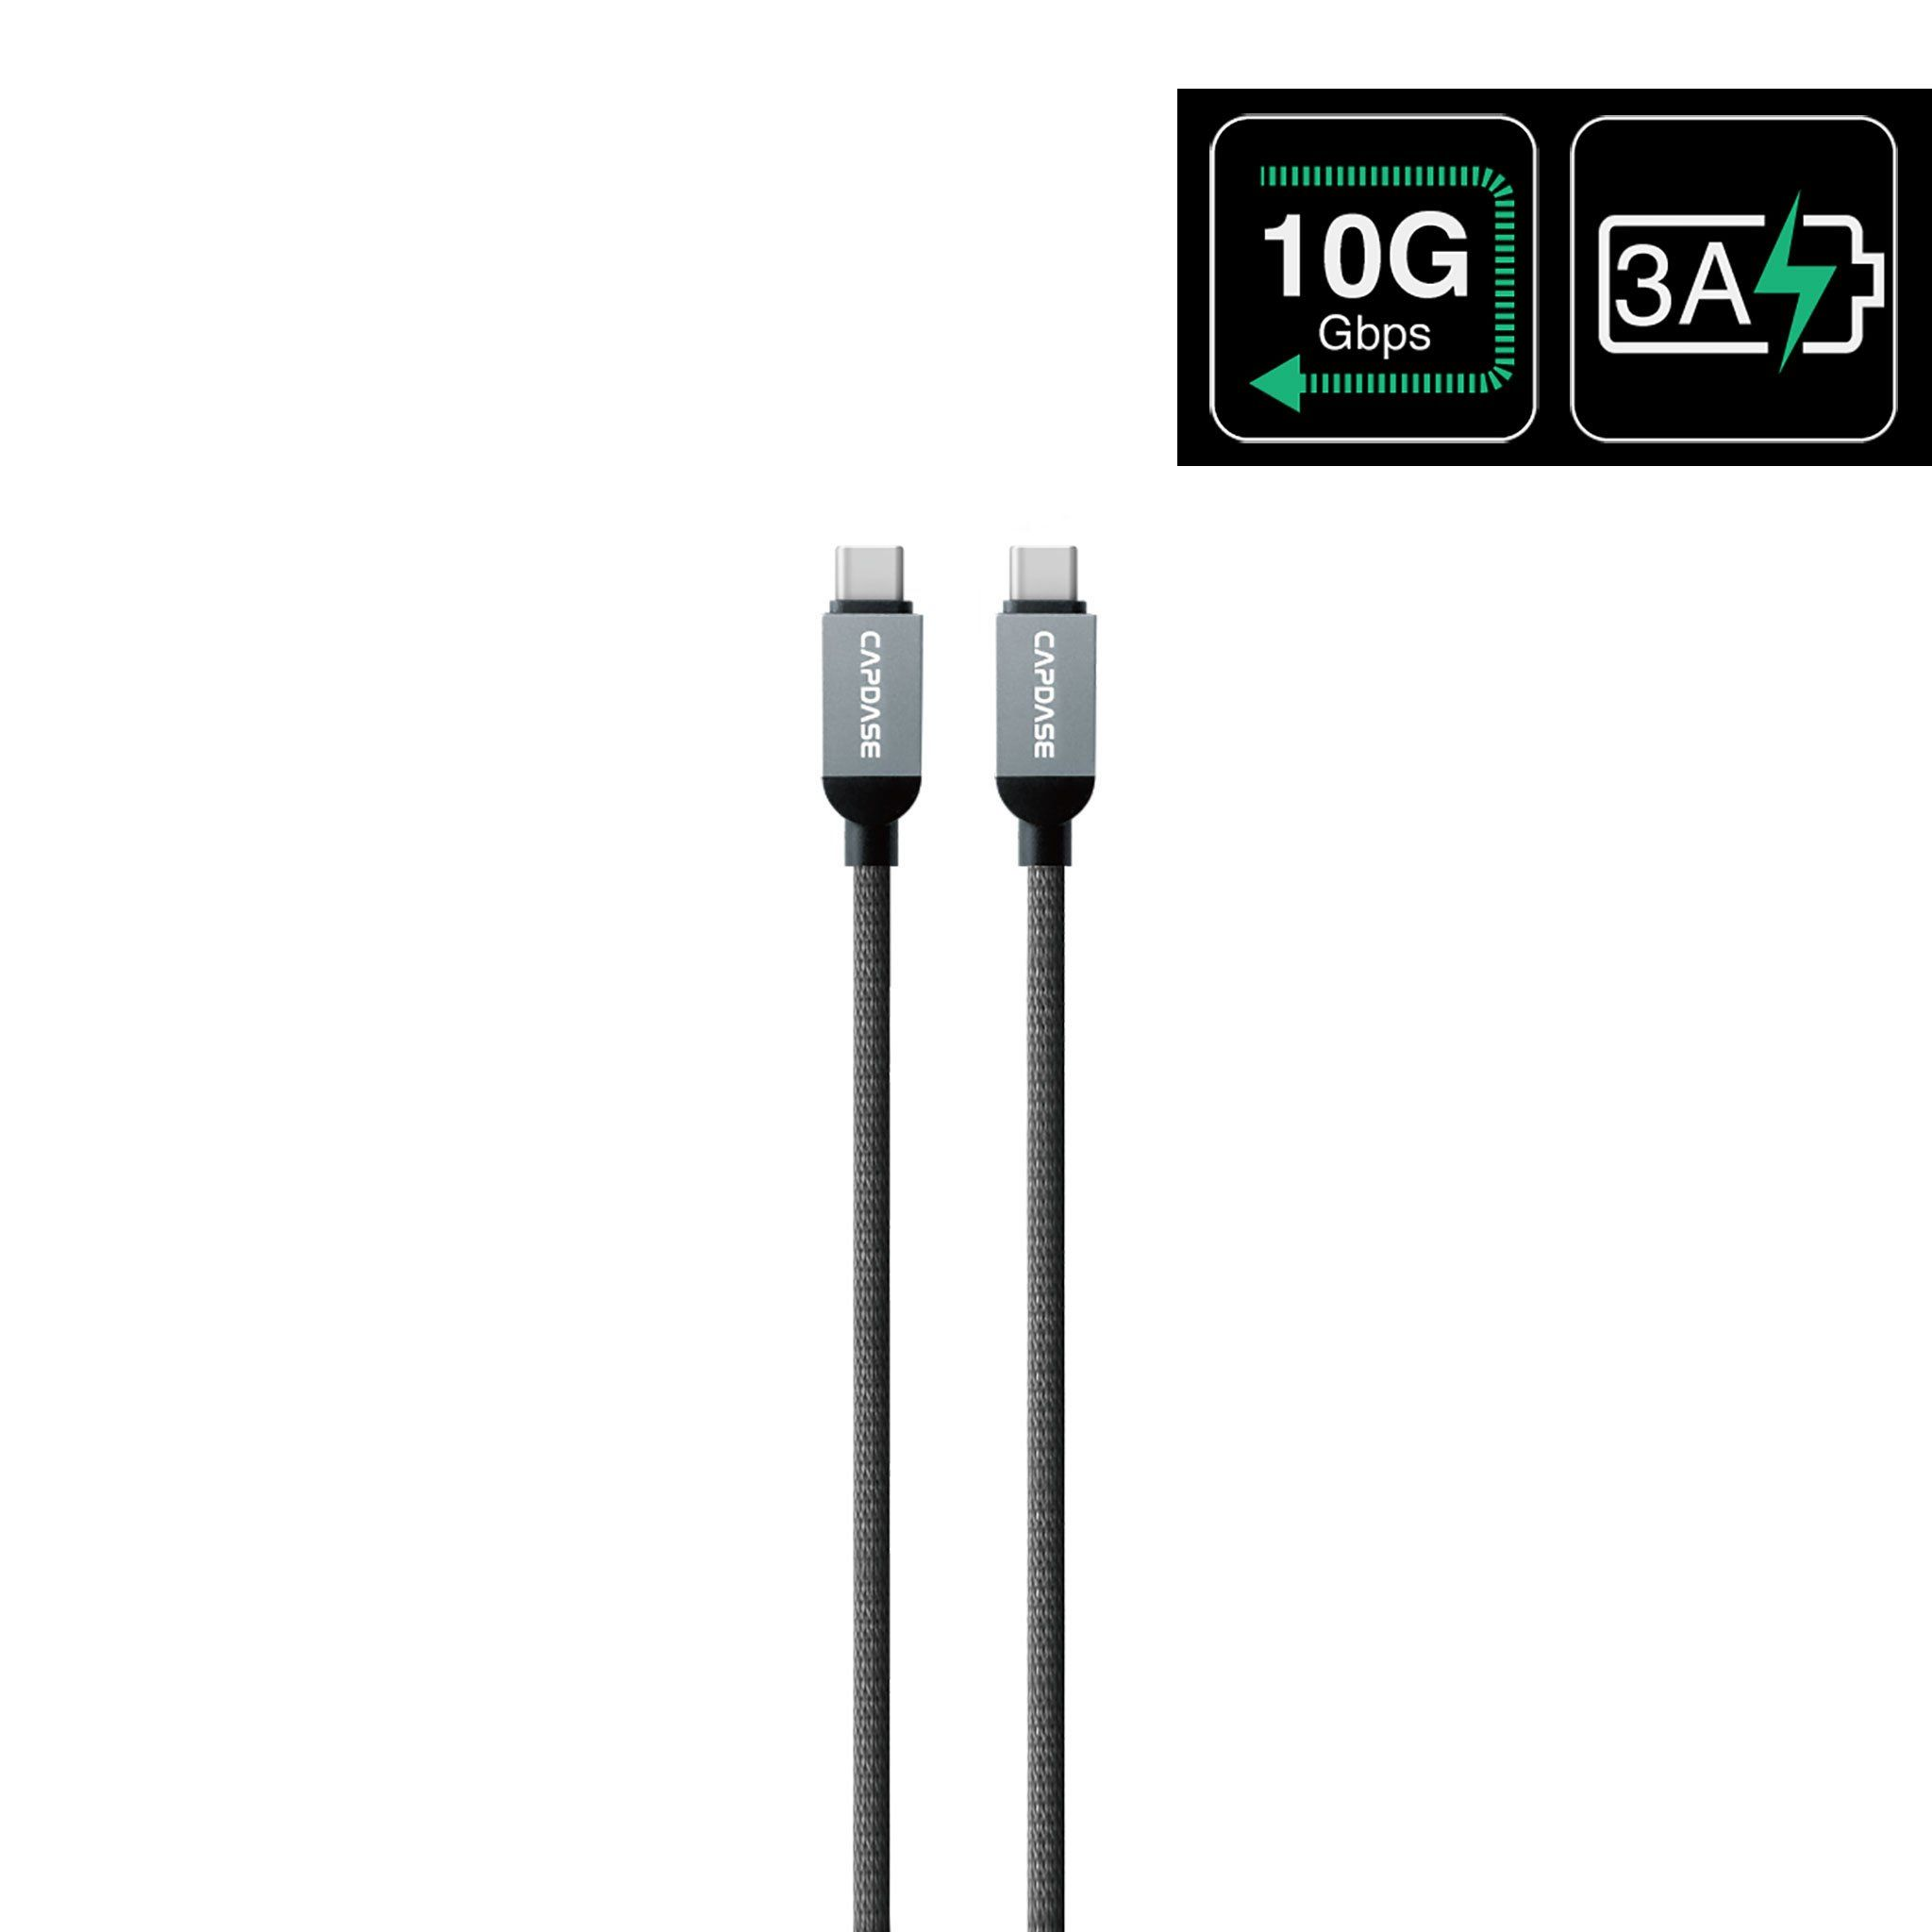 Metallic Cc10g Usb C To Usb C Sync And Charge Cable 1m 10 Gbps Portable External Hard Drive Usb Cable